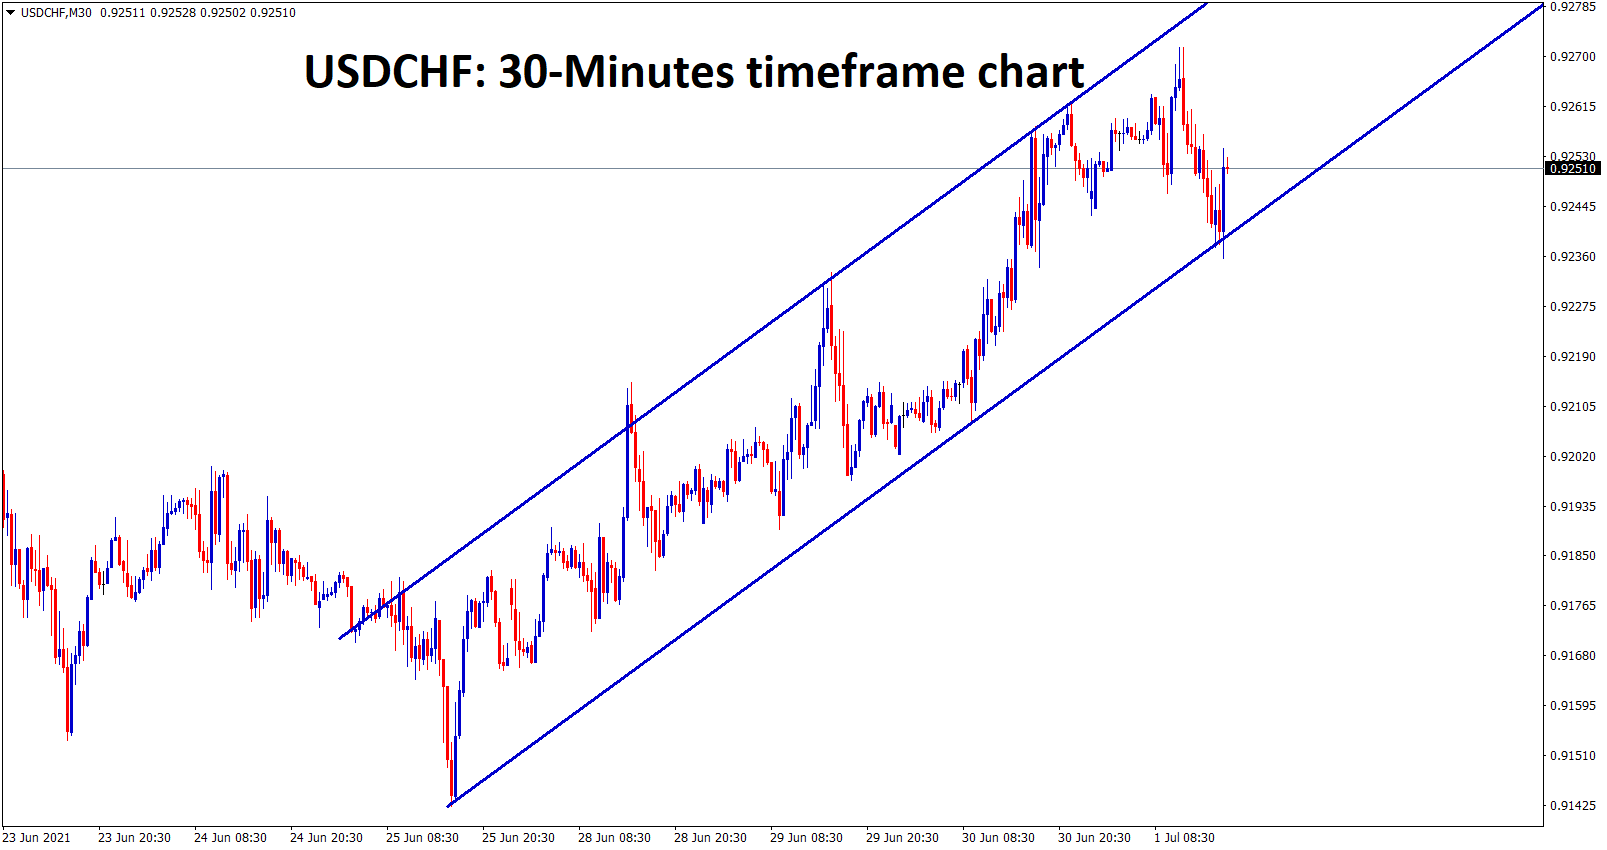 USDCHF is moving in an Ascending channel forming higher highs and higher lows